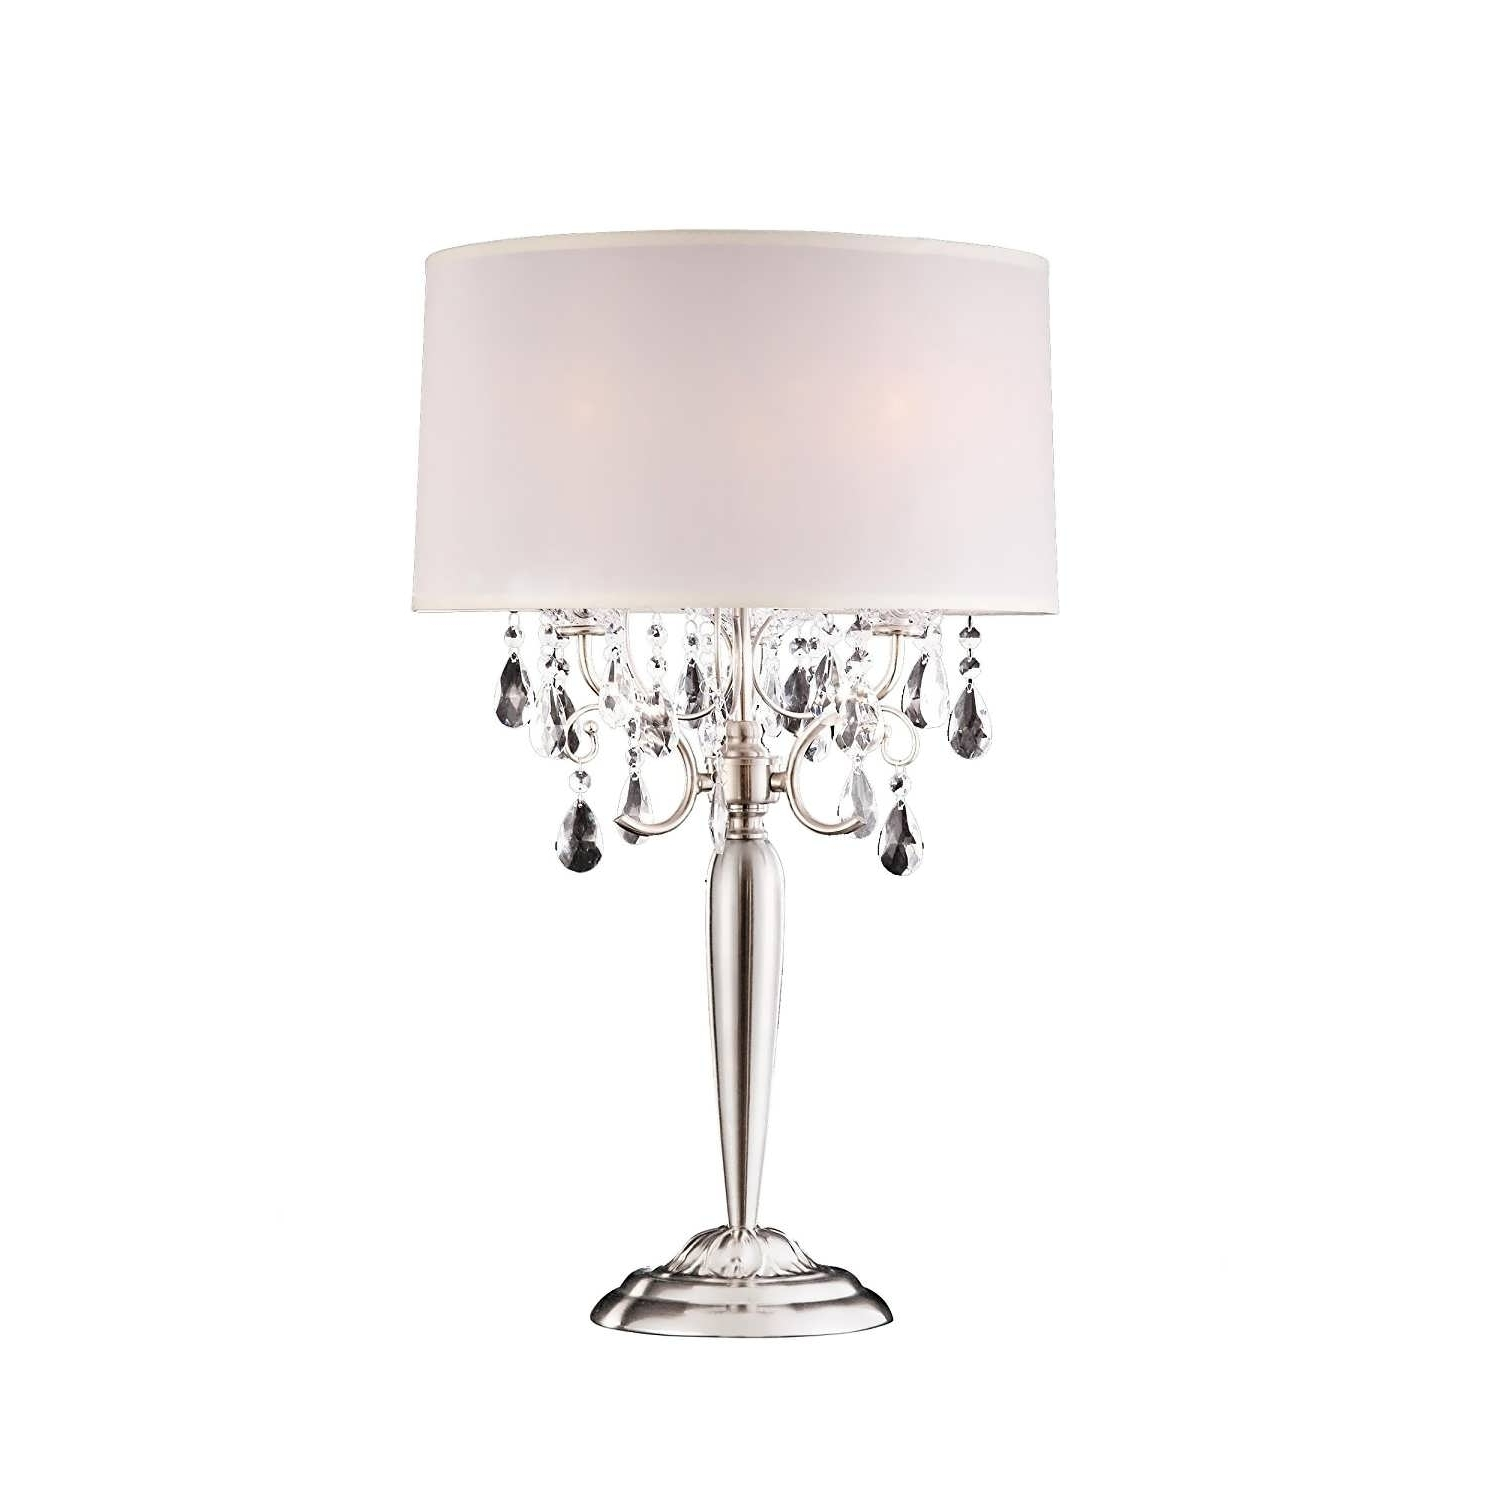 Chandelier Night Stand Lamps Throughout Most Recently Released Light : Large Table Lamps Contemporary Floor Battery Operated (View 8 of 15)